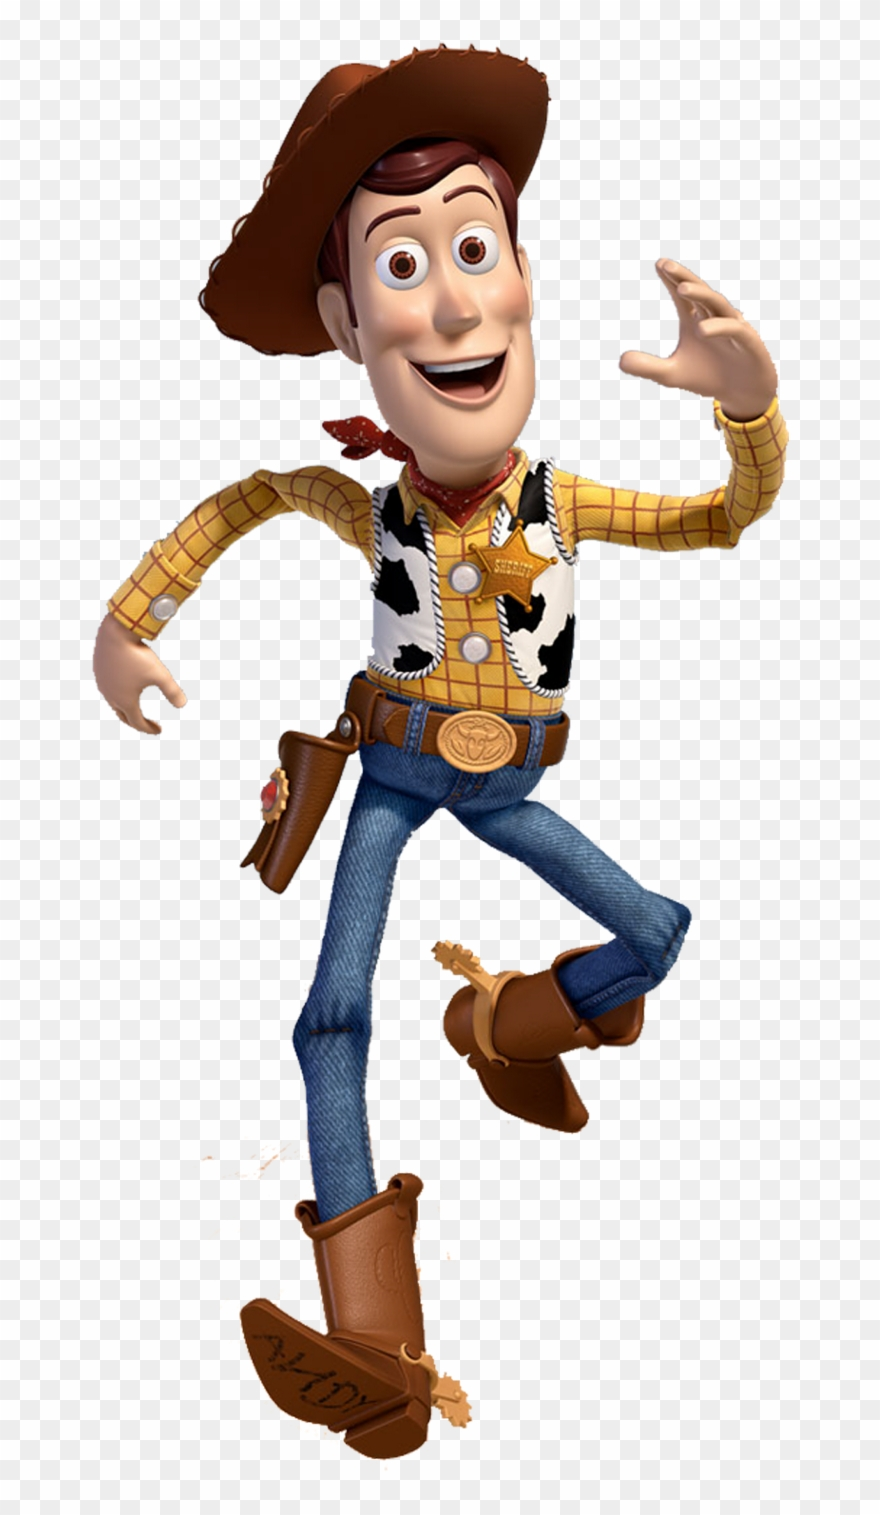 Woody clipart png free download Woody Toy Story Characters Clipart - Toy Story 3 - Png ... png free download